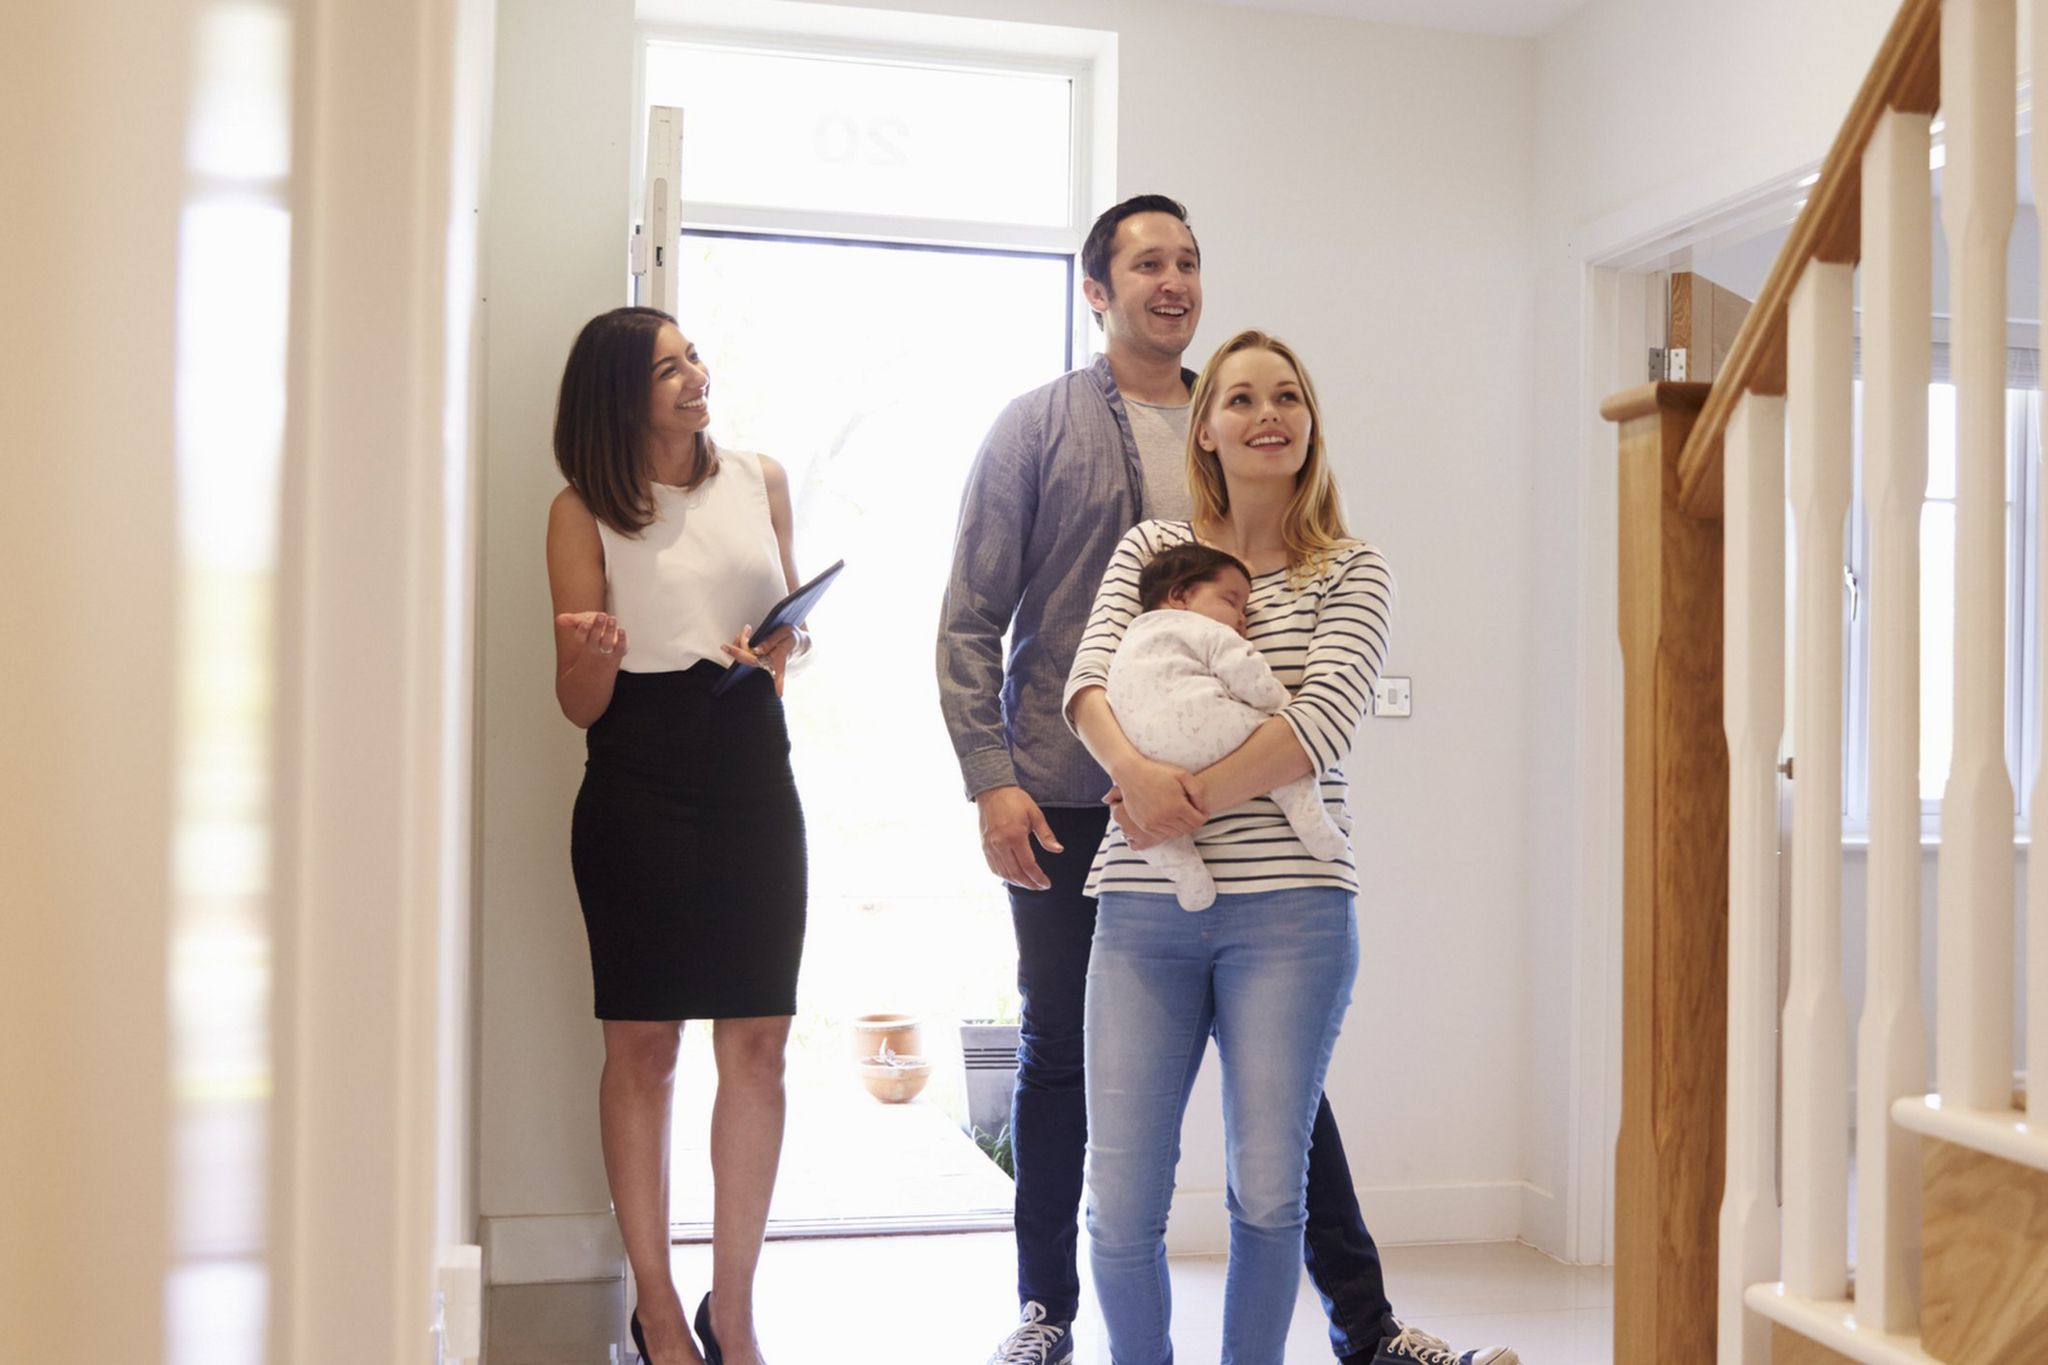 Family being shown around a house